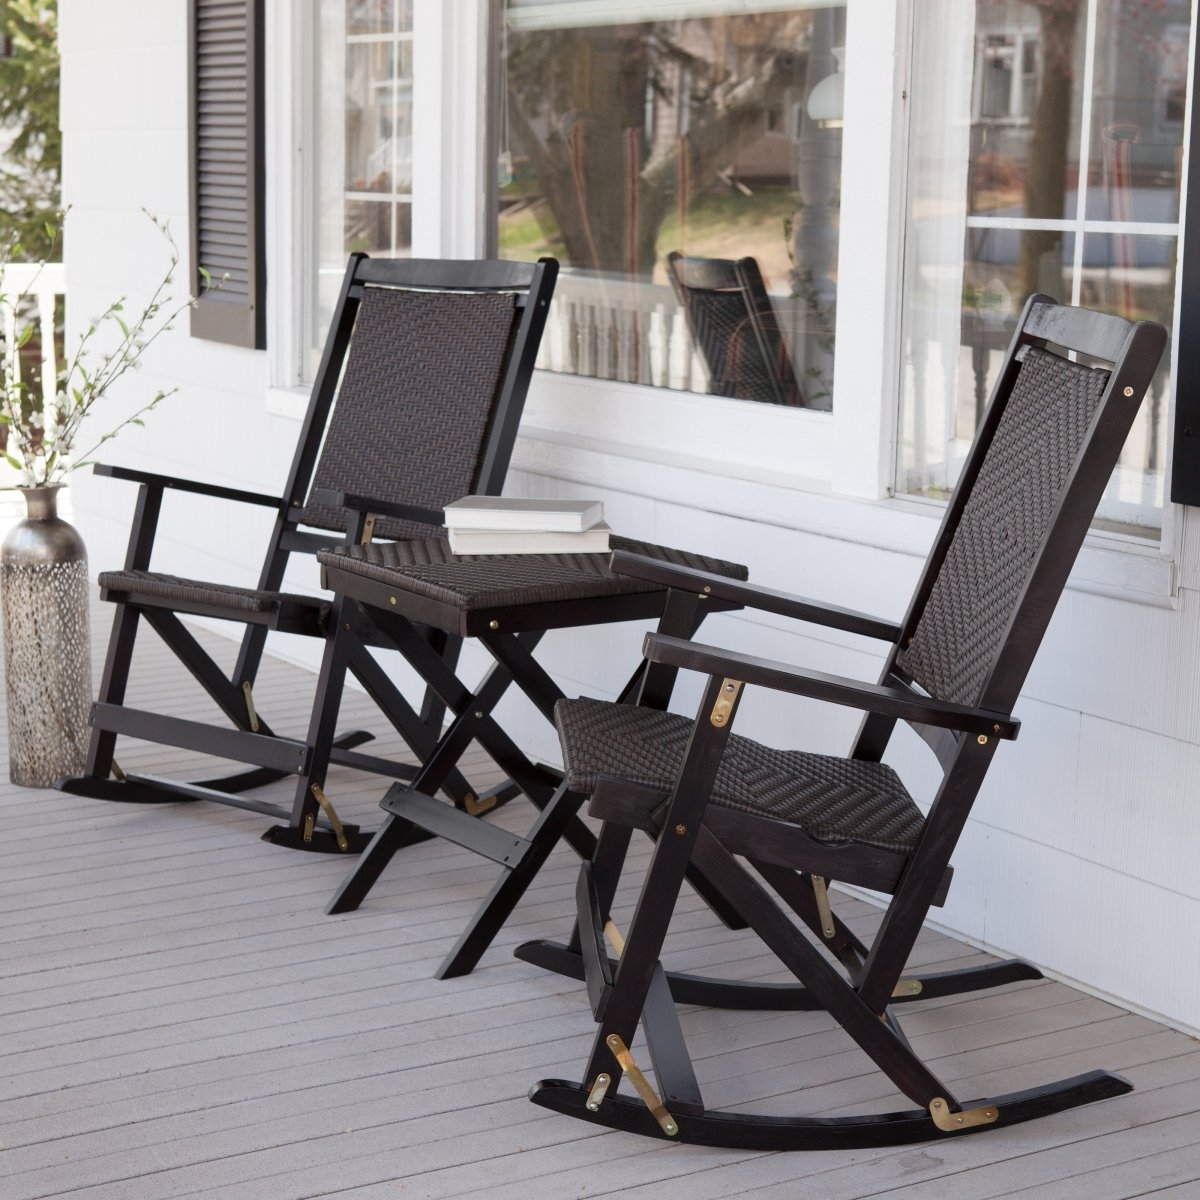 Inspiration about Patio Rocking Chairs Black : Spectacular And Sensational Patio For Outdoor Patio Rocking Chairs (#12 of 15)